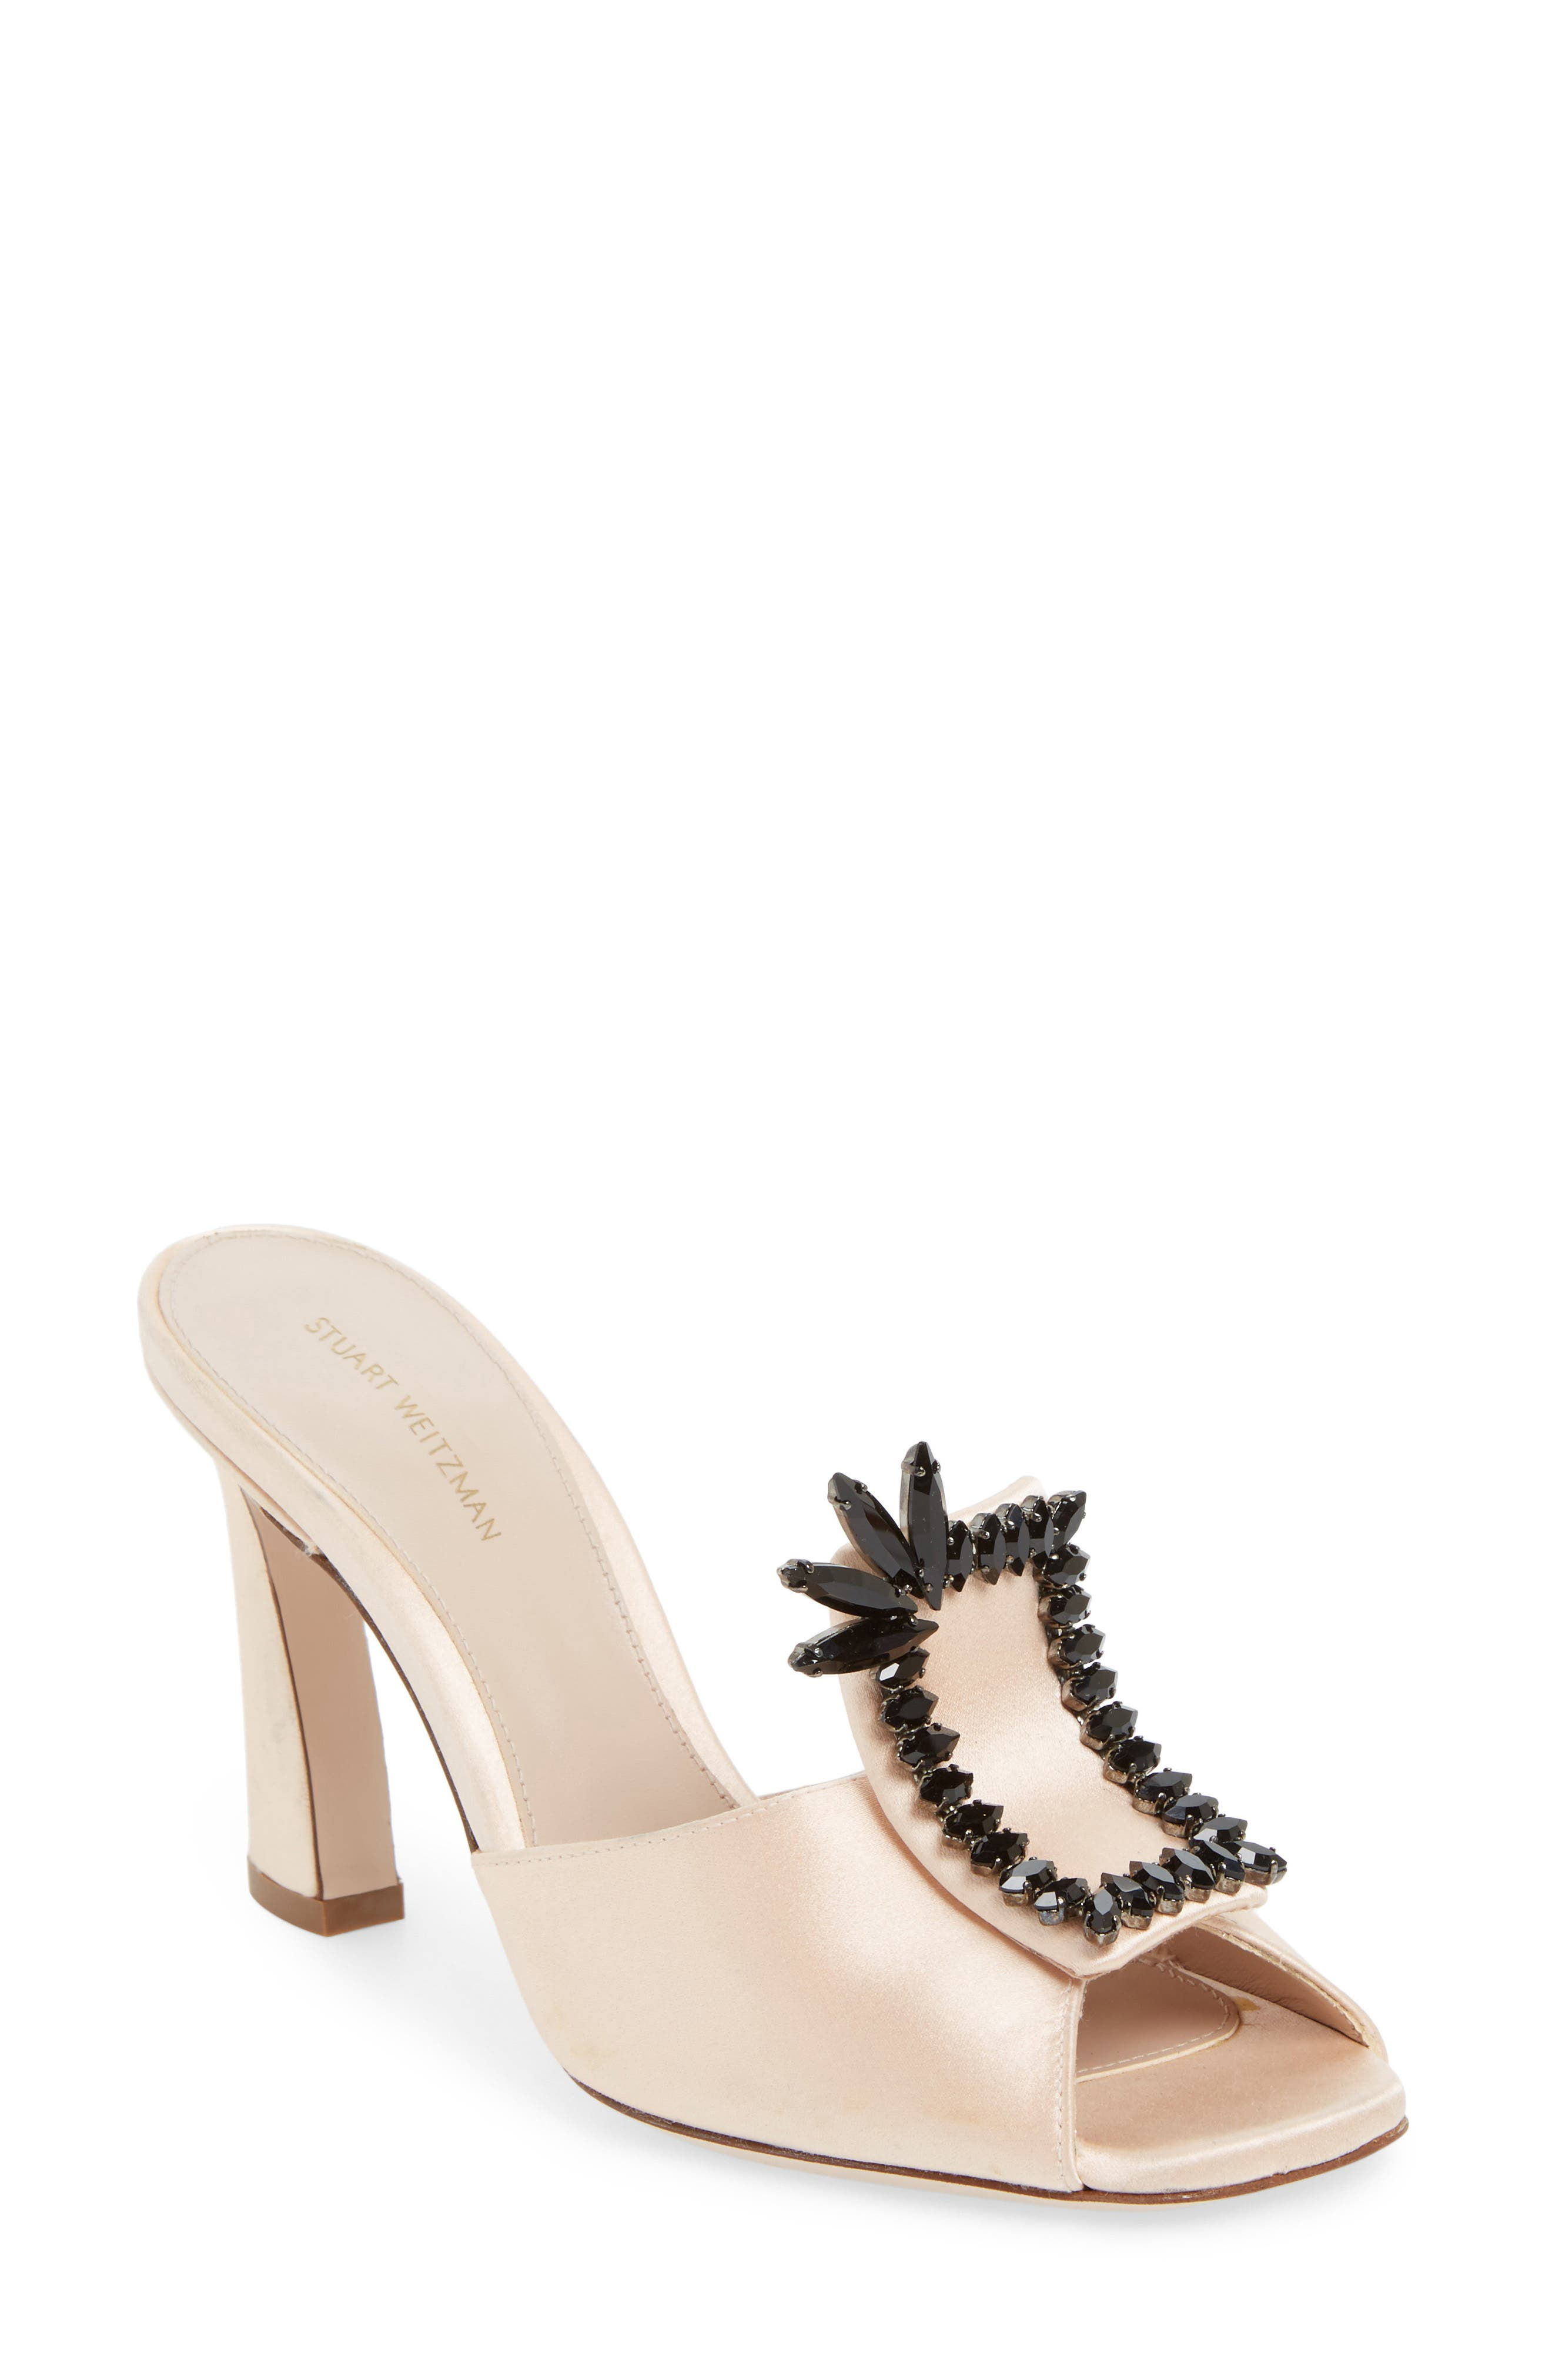 Radiance Embellished d'Orsay Sandal,                             Main thumbnail 1, color,                             270